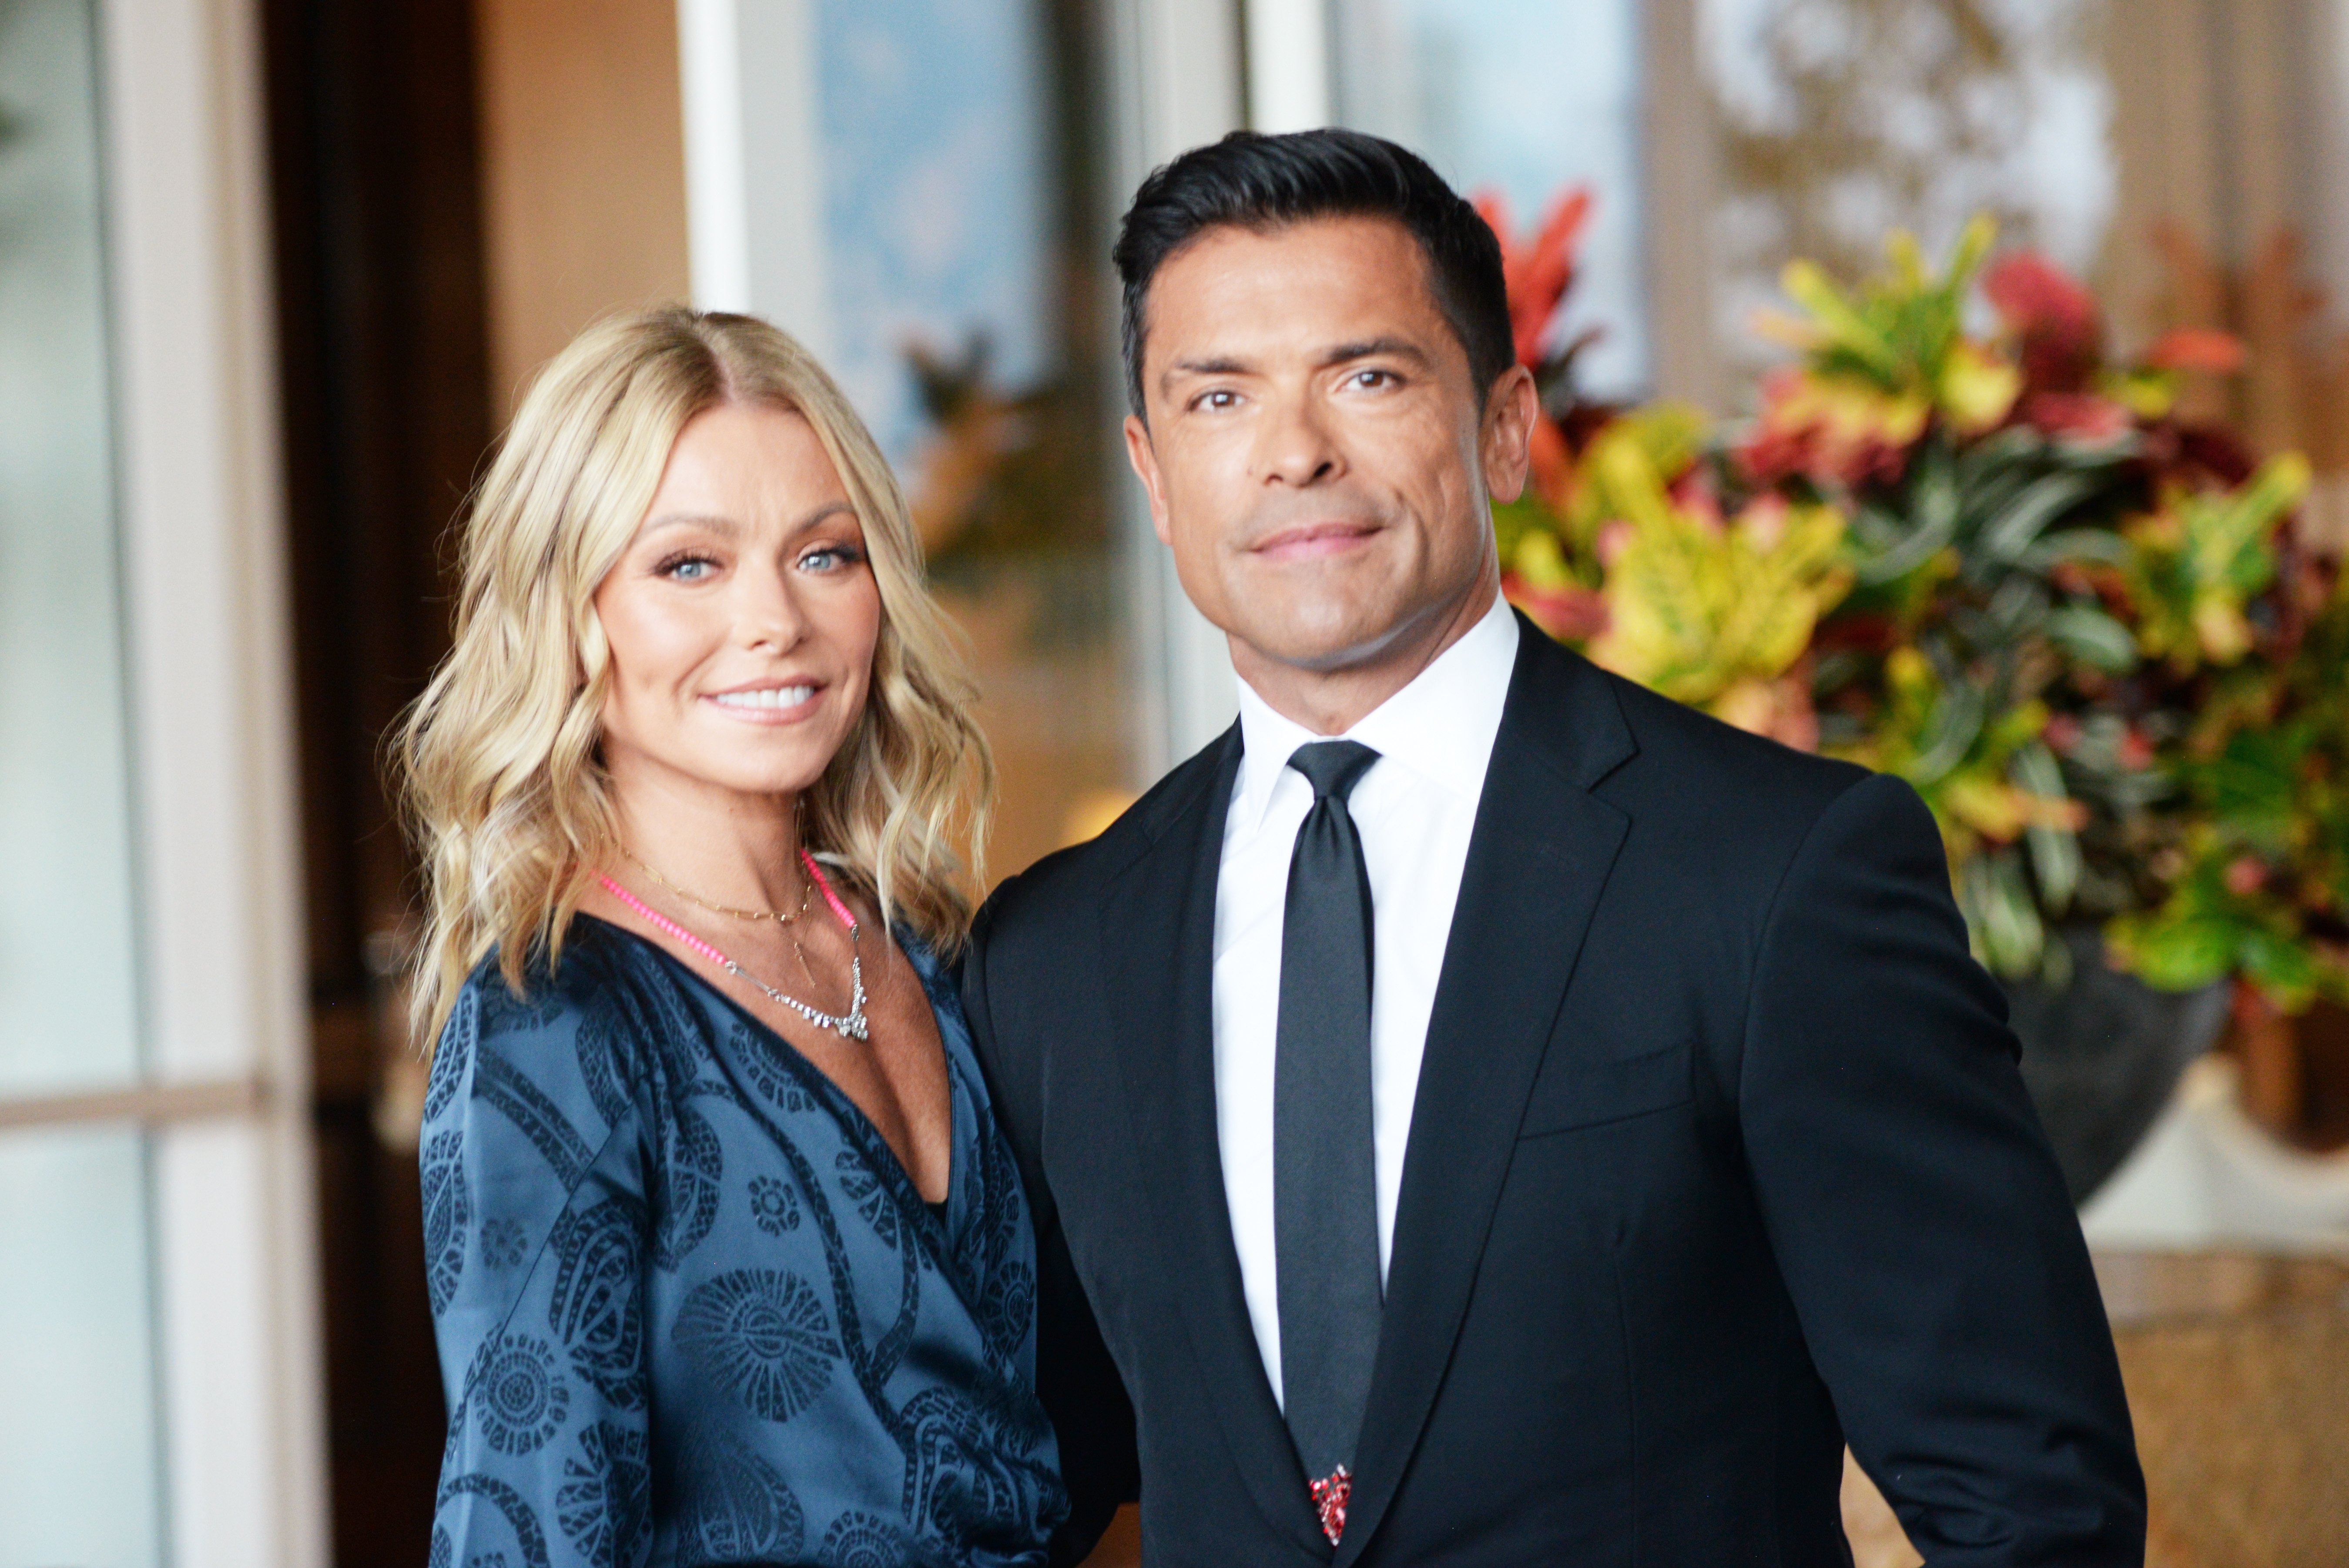 Kelly Ripa and Mark Consuelos arrive at the Los Angeles LGBT Center's 49th Anniversary Gala Vanguard Awards on September 22, 2018, in Beverly Hills, California. | Source: Getty Images.